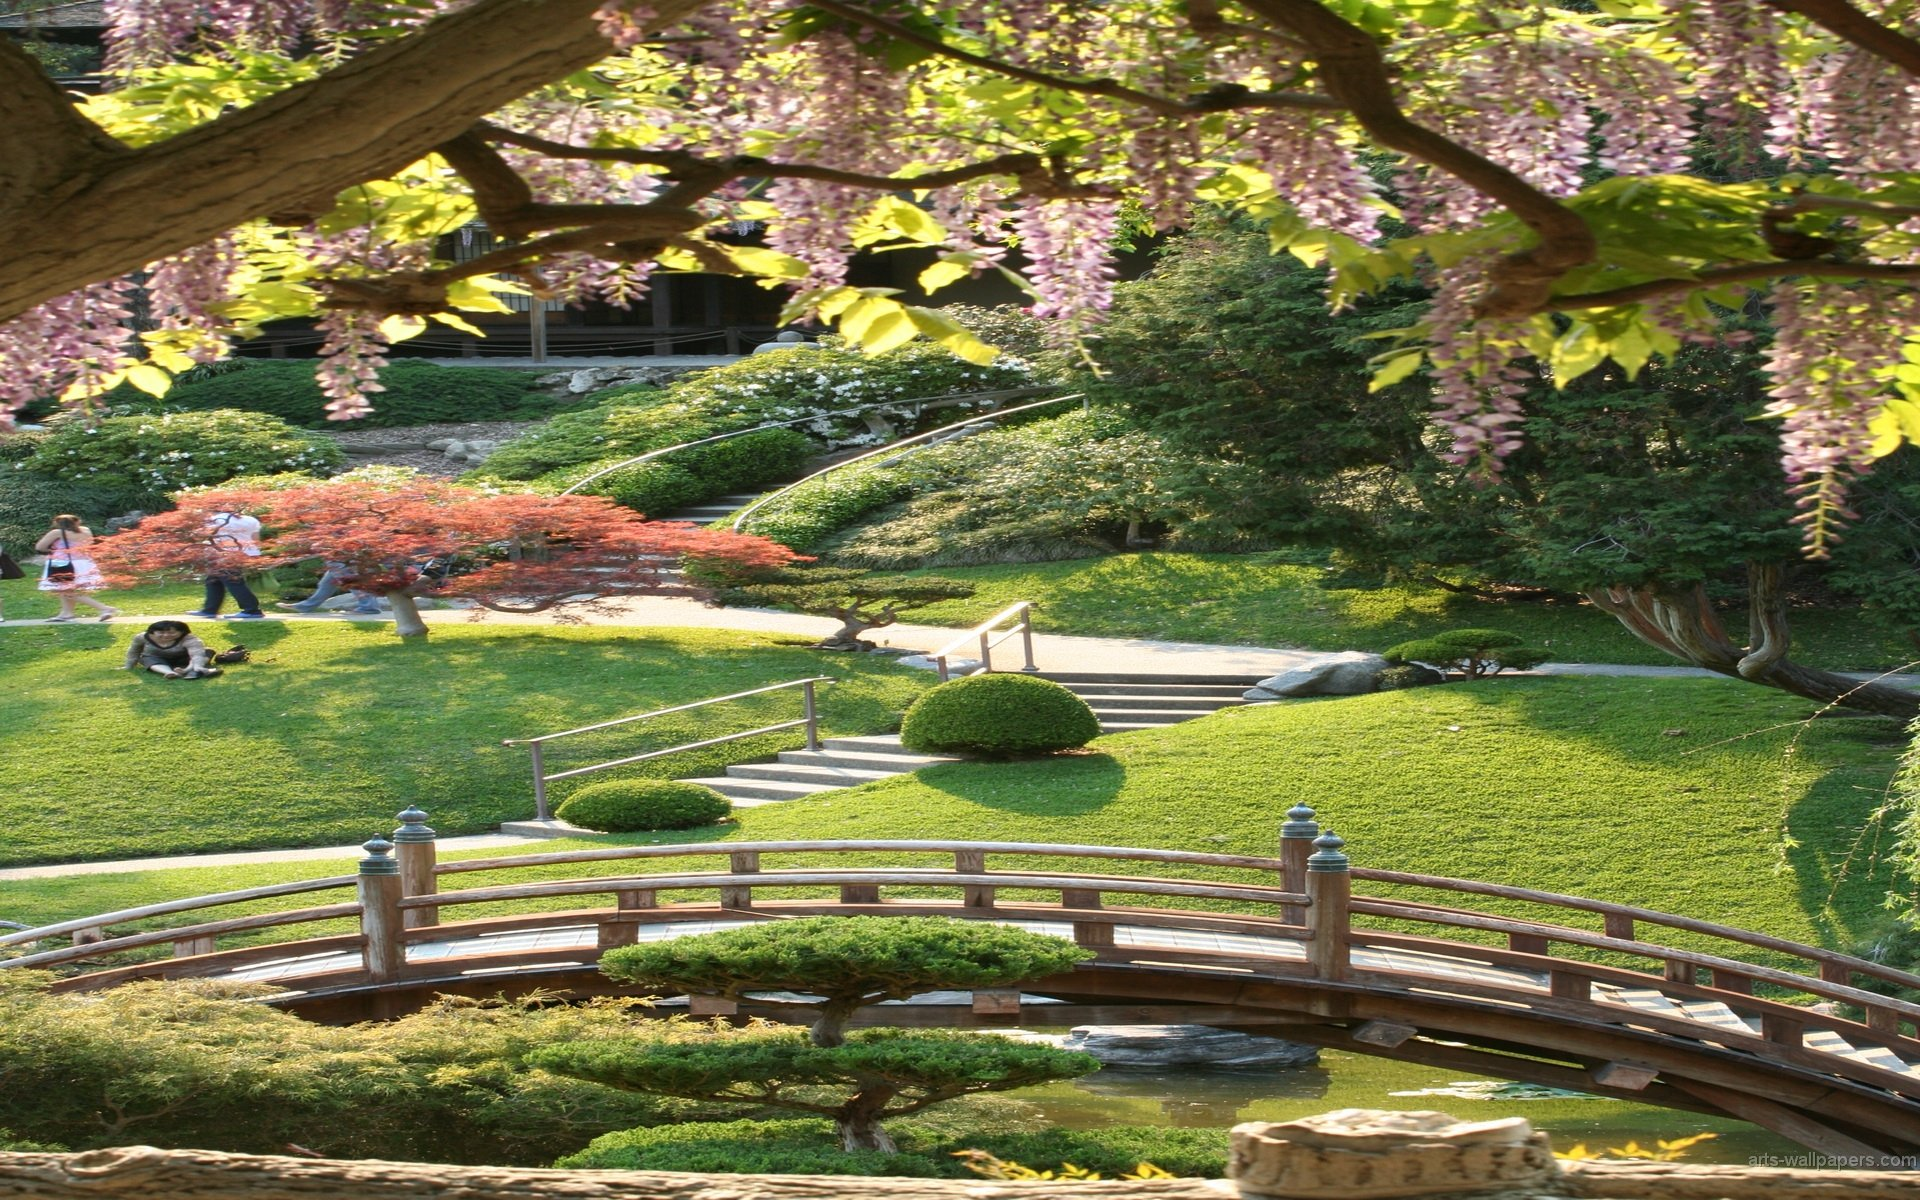 wallpaperscomtravel wallpapersJapaneseGarden Wallpapersimagepages 1920x1200